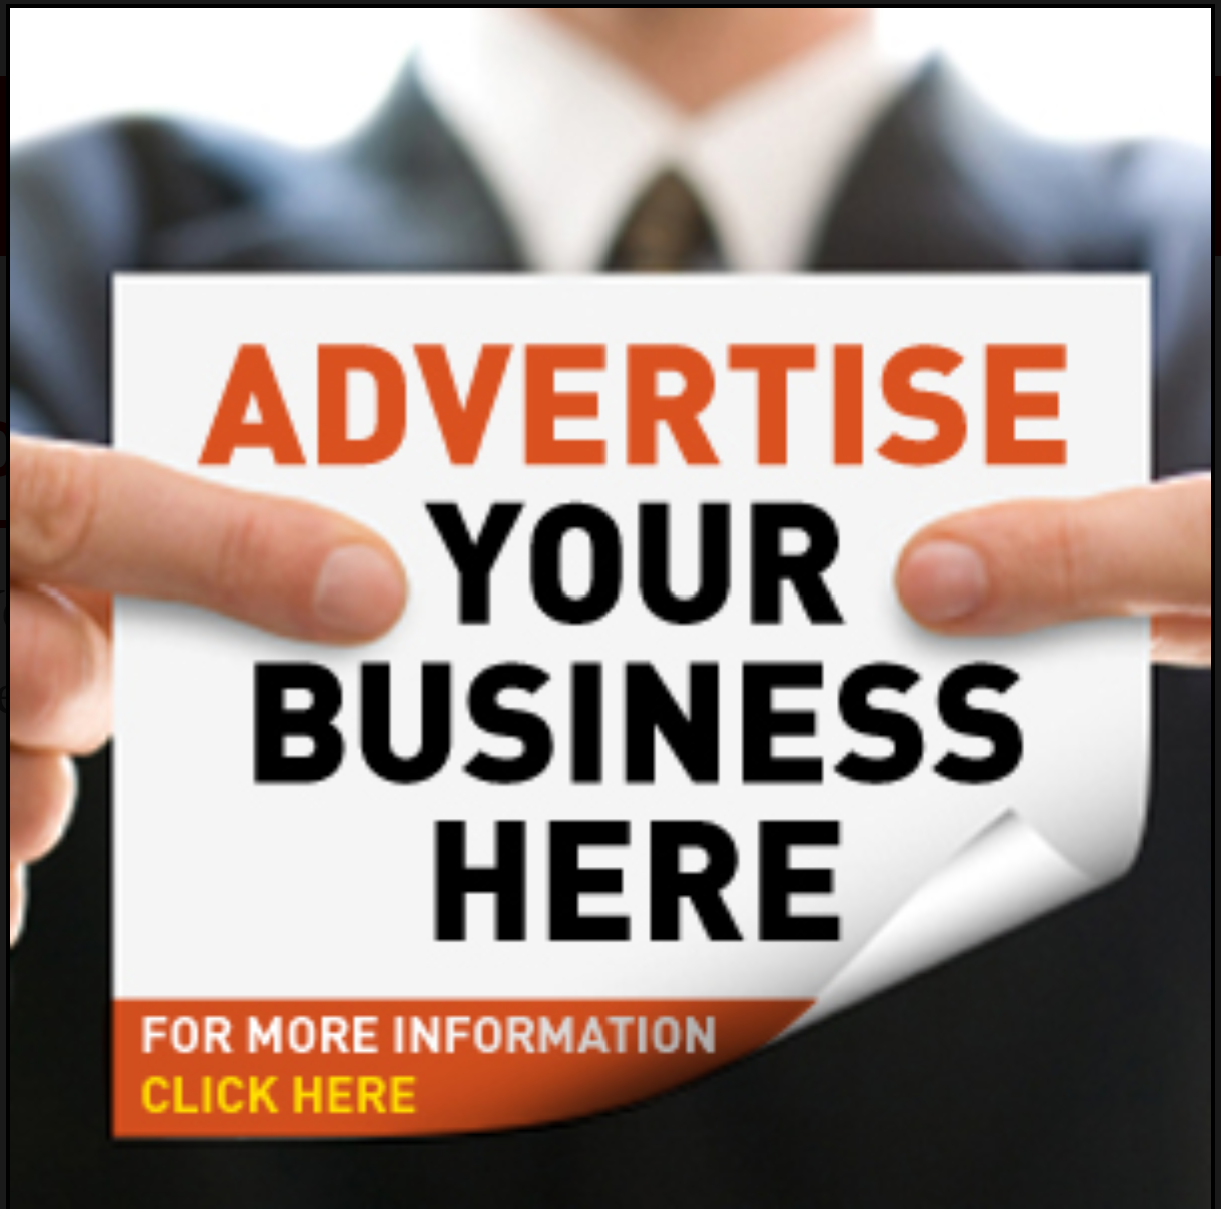 PLACE YOUR ADVERT HERE...